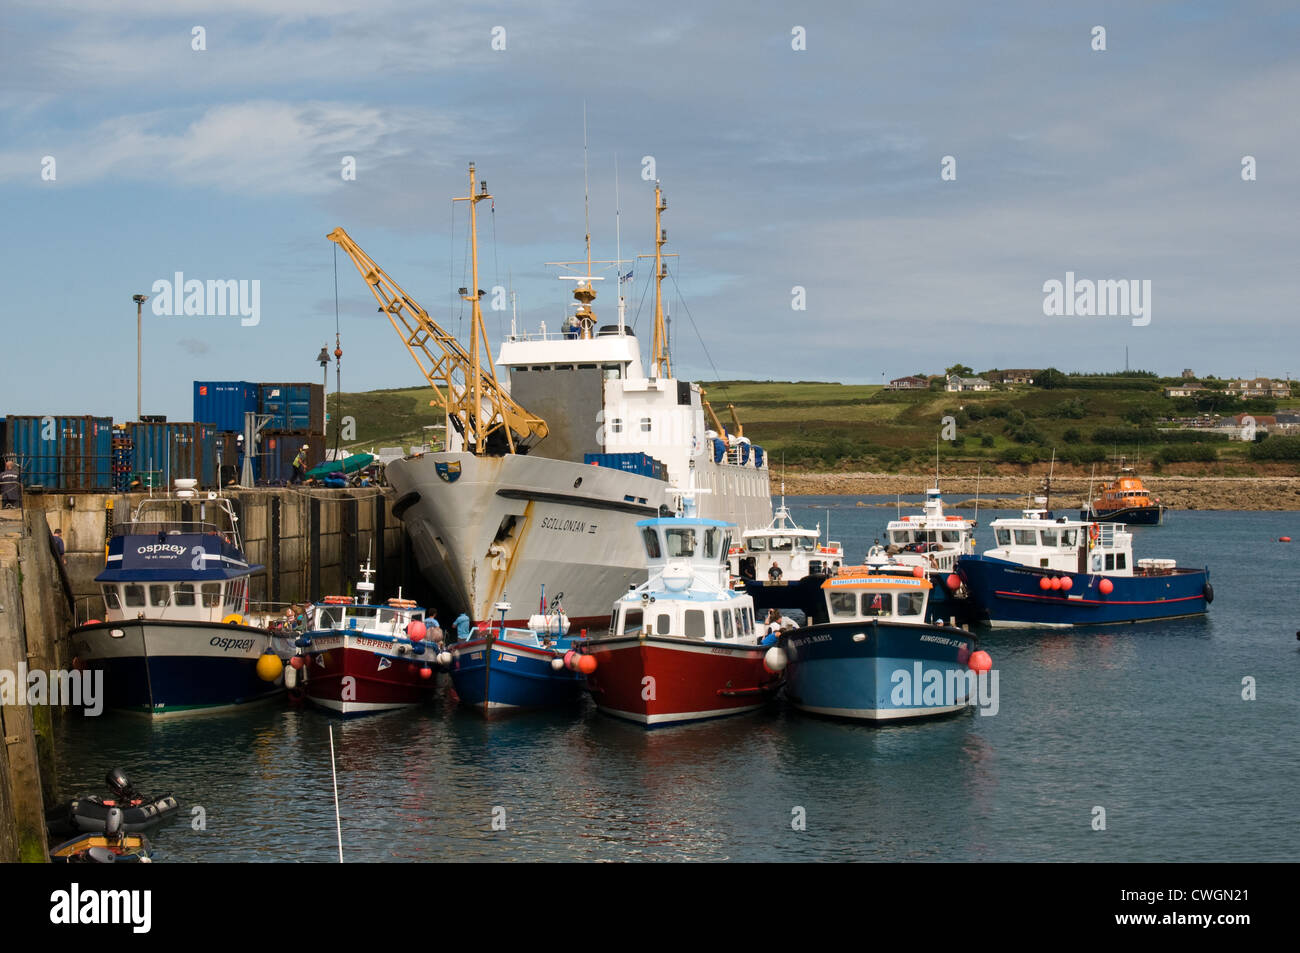 The Scillonian III off loads cargo at the Quay in Hugh Town harbor, St Mary's, Isle of Scilly. Off island ferries - Stock Image